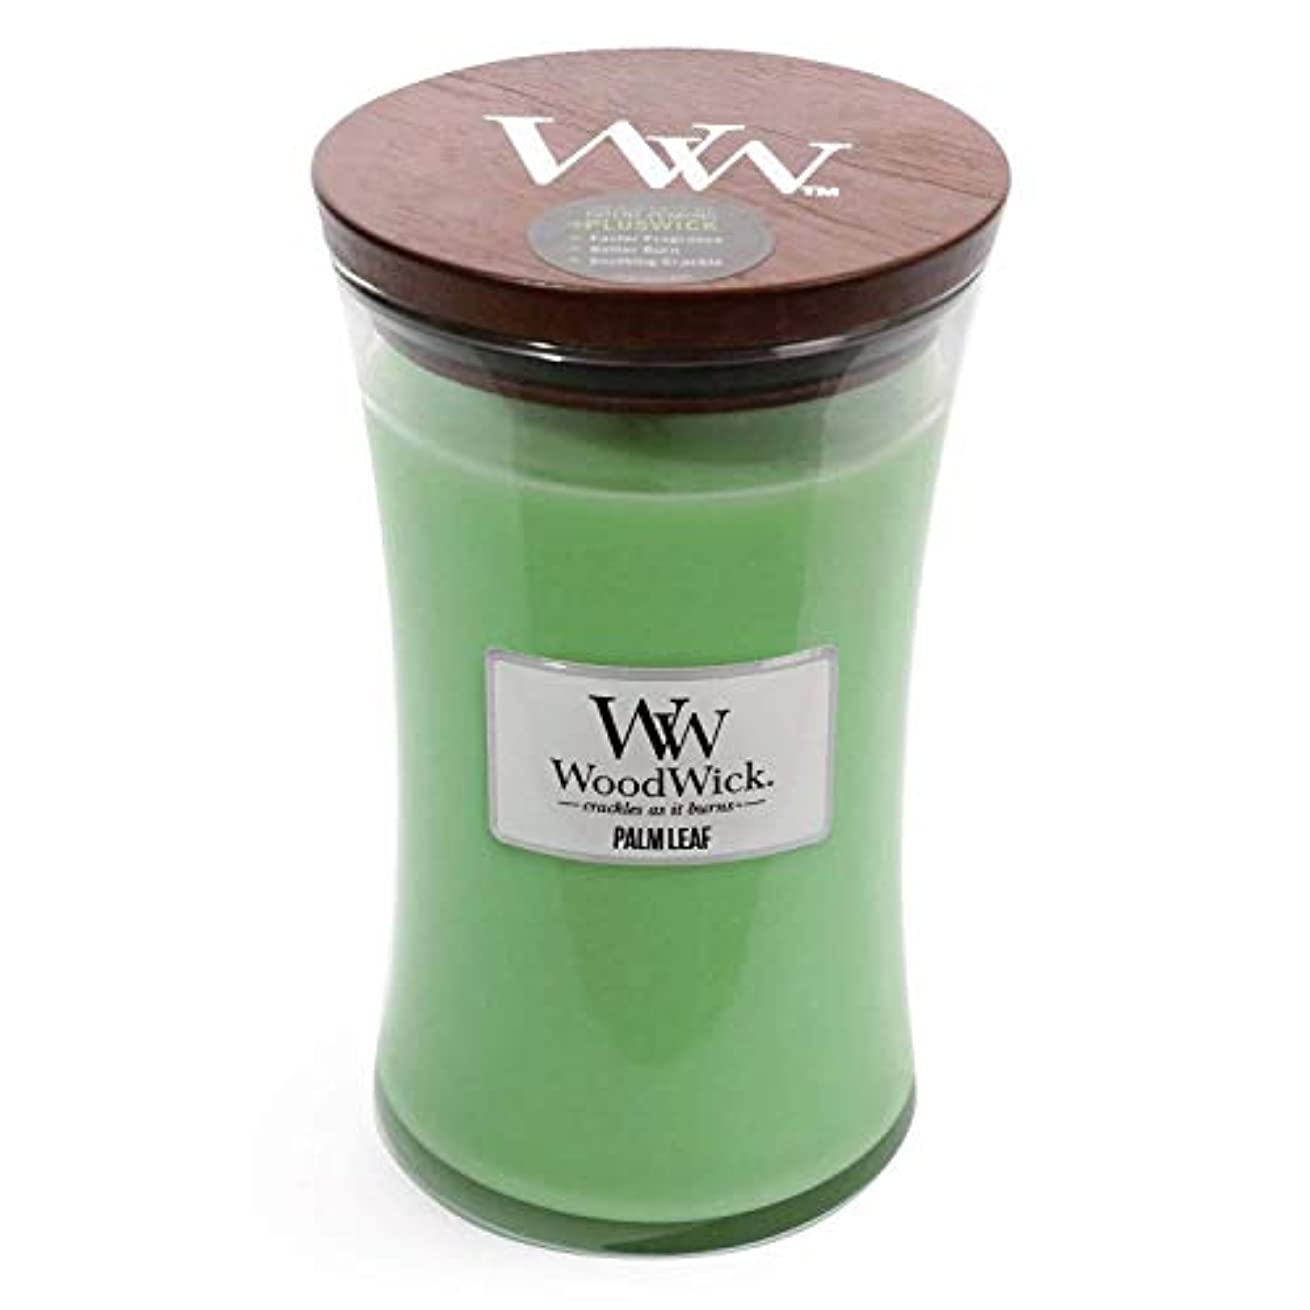 まもなく灰論争の的Palm Leaf WoodWick 22 oz Large砂時計Jar Candle Burns 180時間